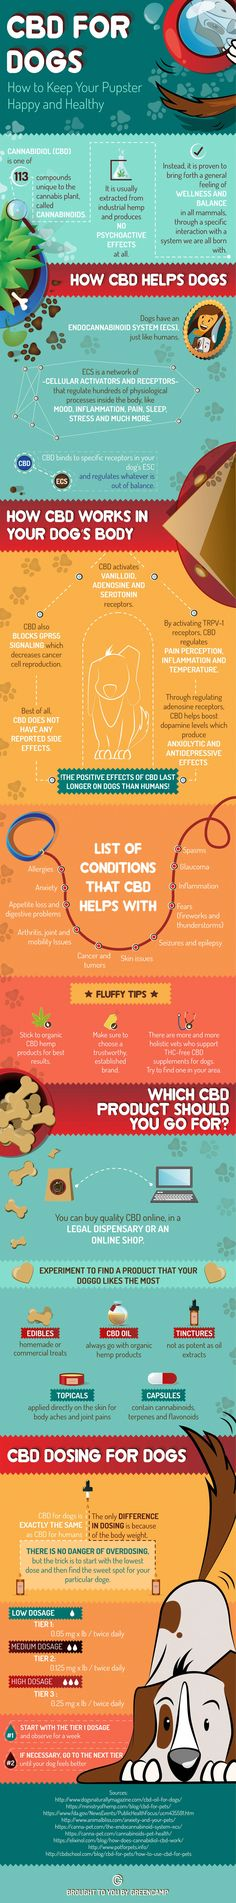 CBD containing medicinal cannabis for dogs can help with a range of conditions including dog arthritis, pain, anxiety and cancer. This natural dog treatment is gaining more attention and recent research is very promising that it will be a huge help to our canine friends.